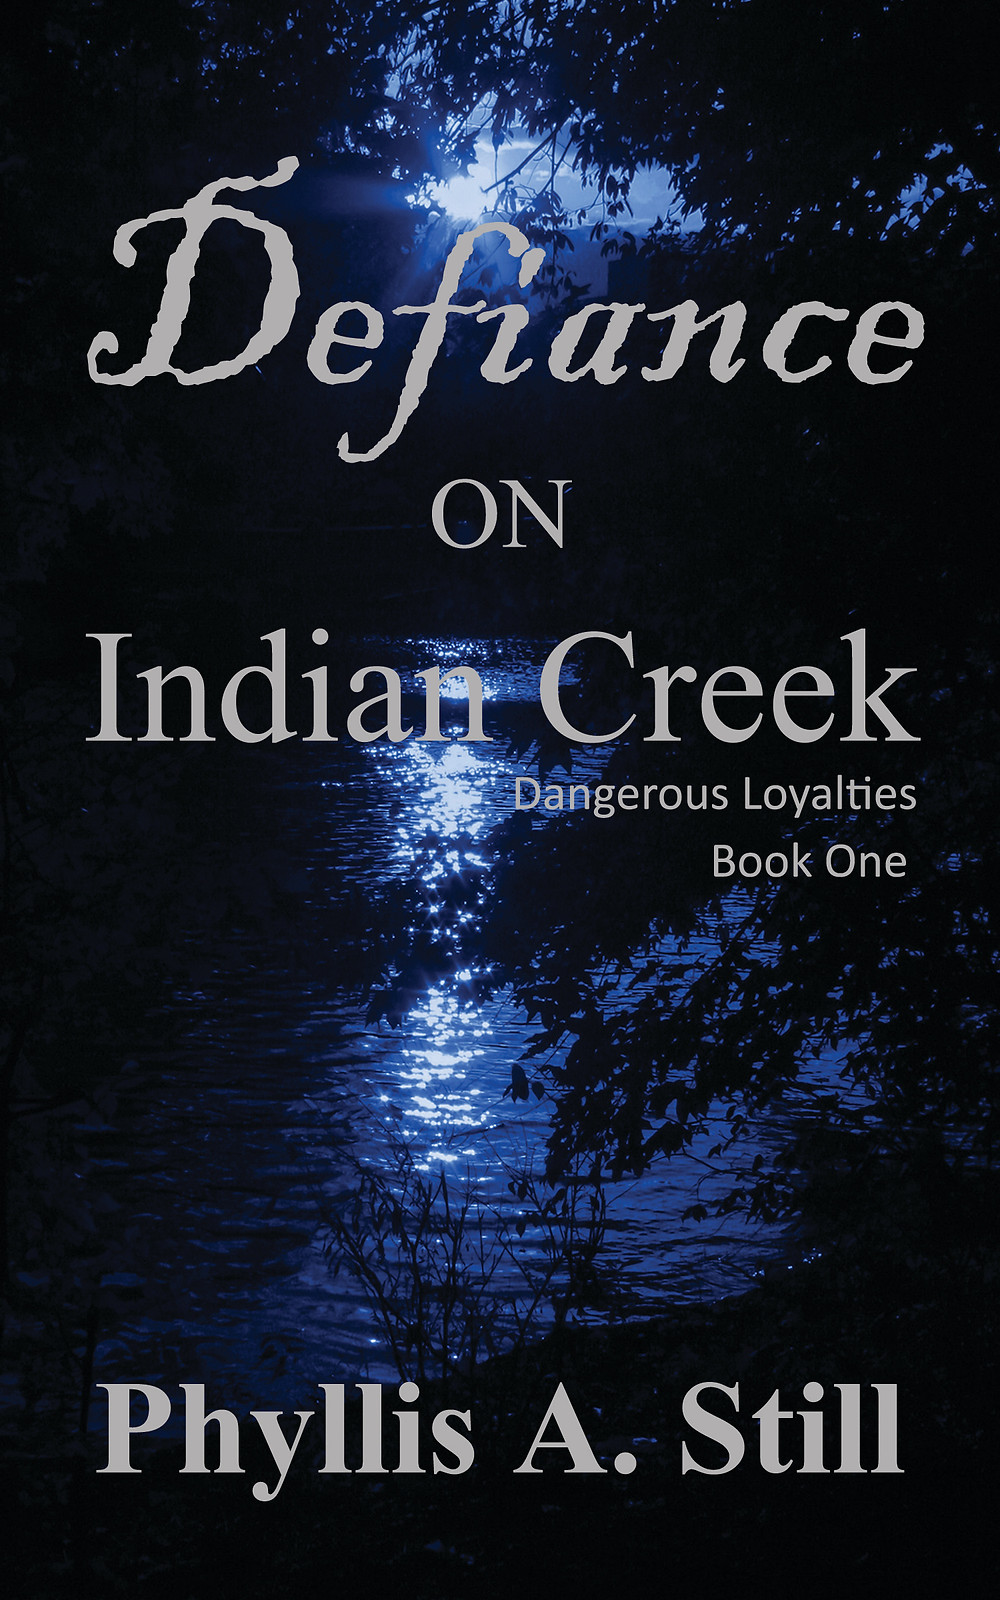 DEFIANCE ON INDIAN CREEK by Phyllis A. Still